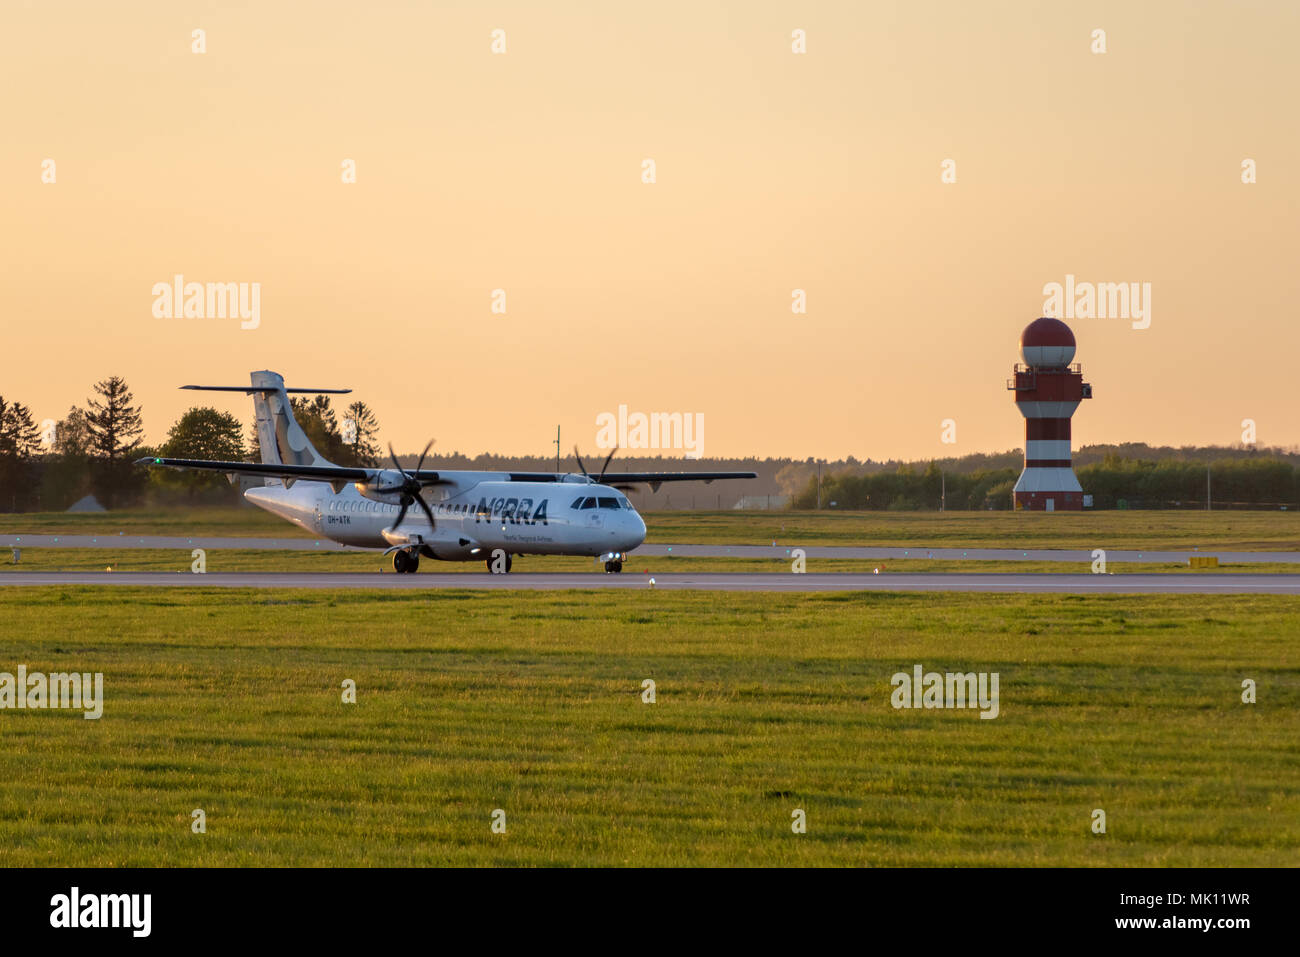 GDANSK, POLAND - May 5, 2018: Nordic Regional Airlines (NORRA) airplane taxiing at Lech Walesa Airport in Gdansk. - Stock Image